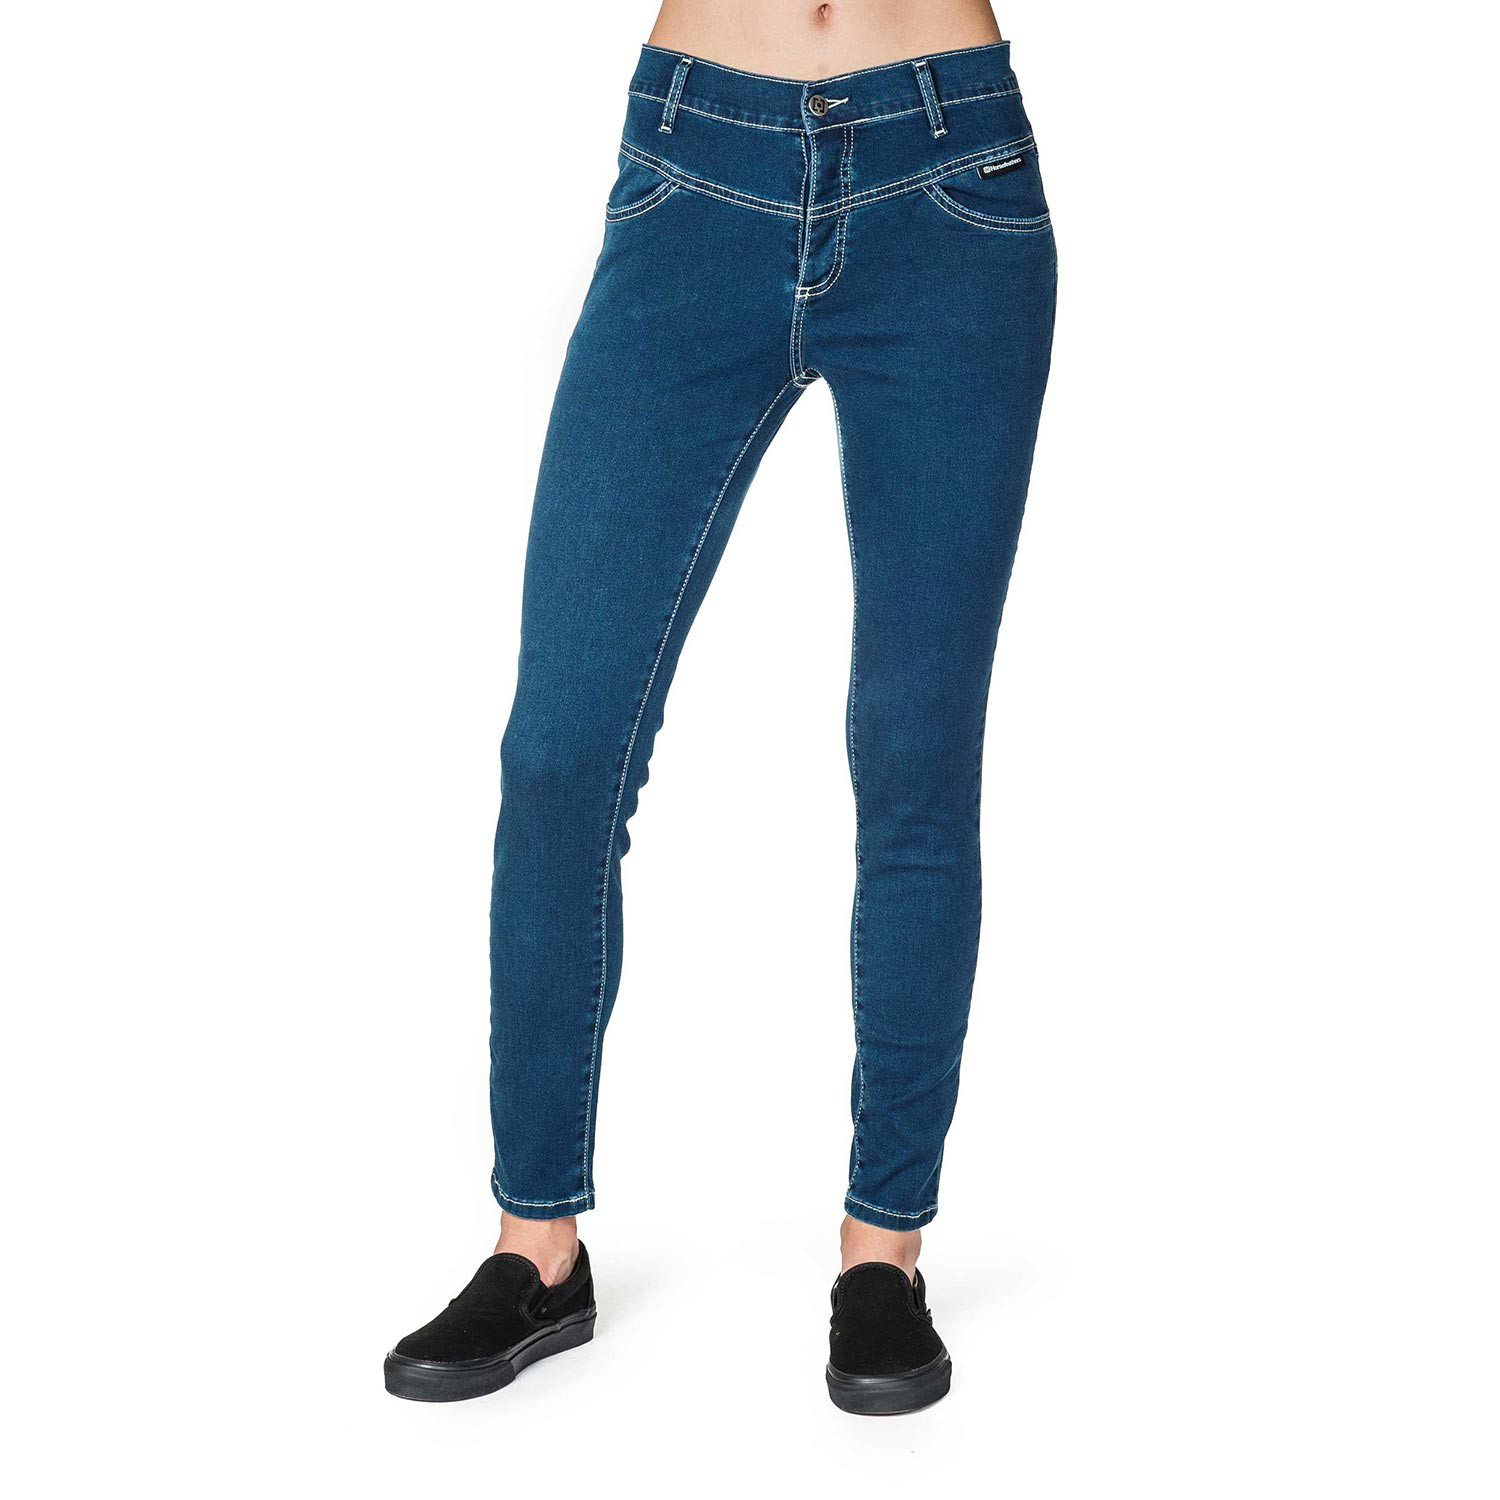 Jeansy Horsefeathers Lune vintage denim